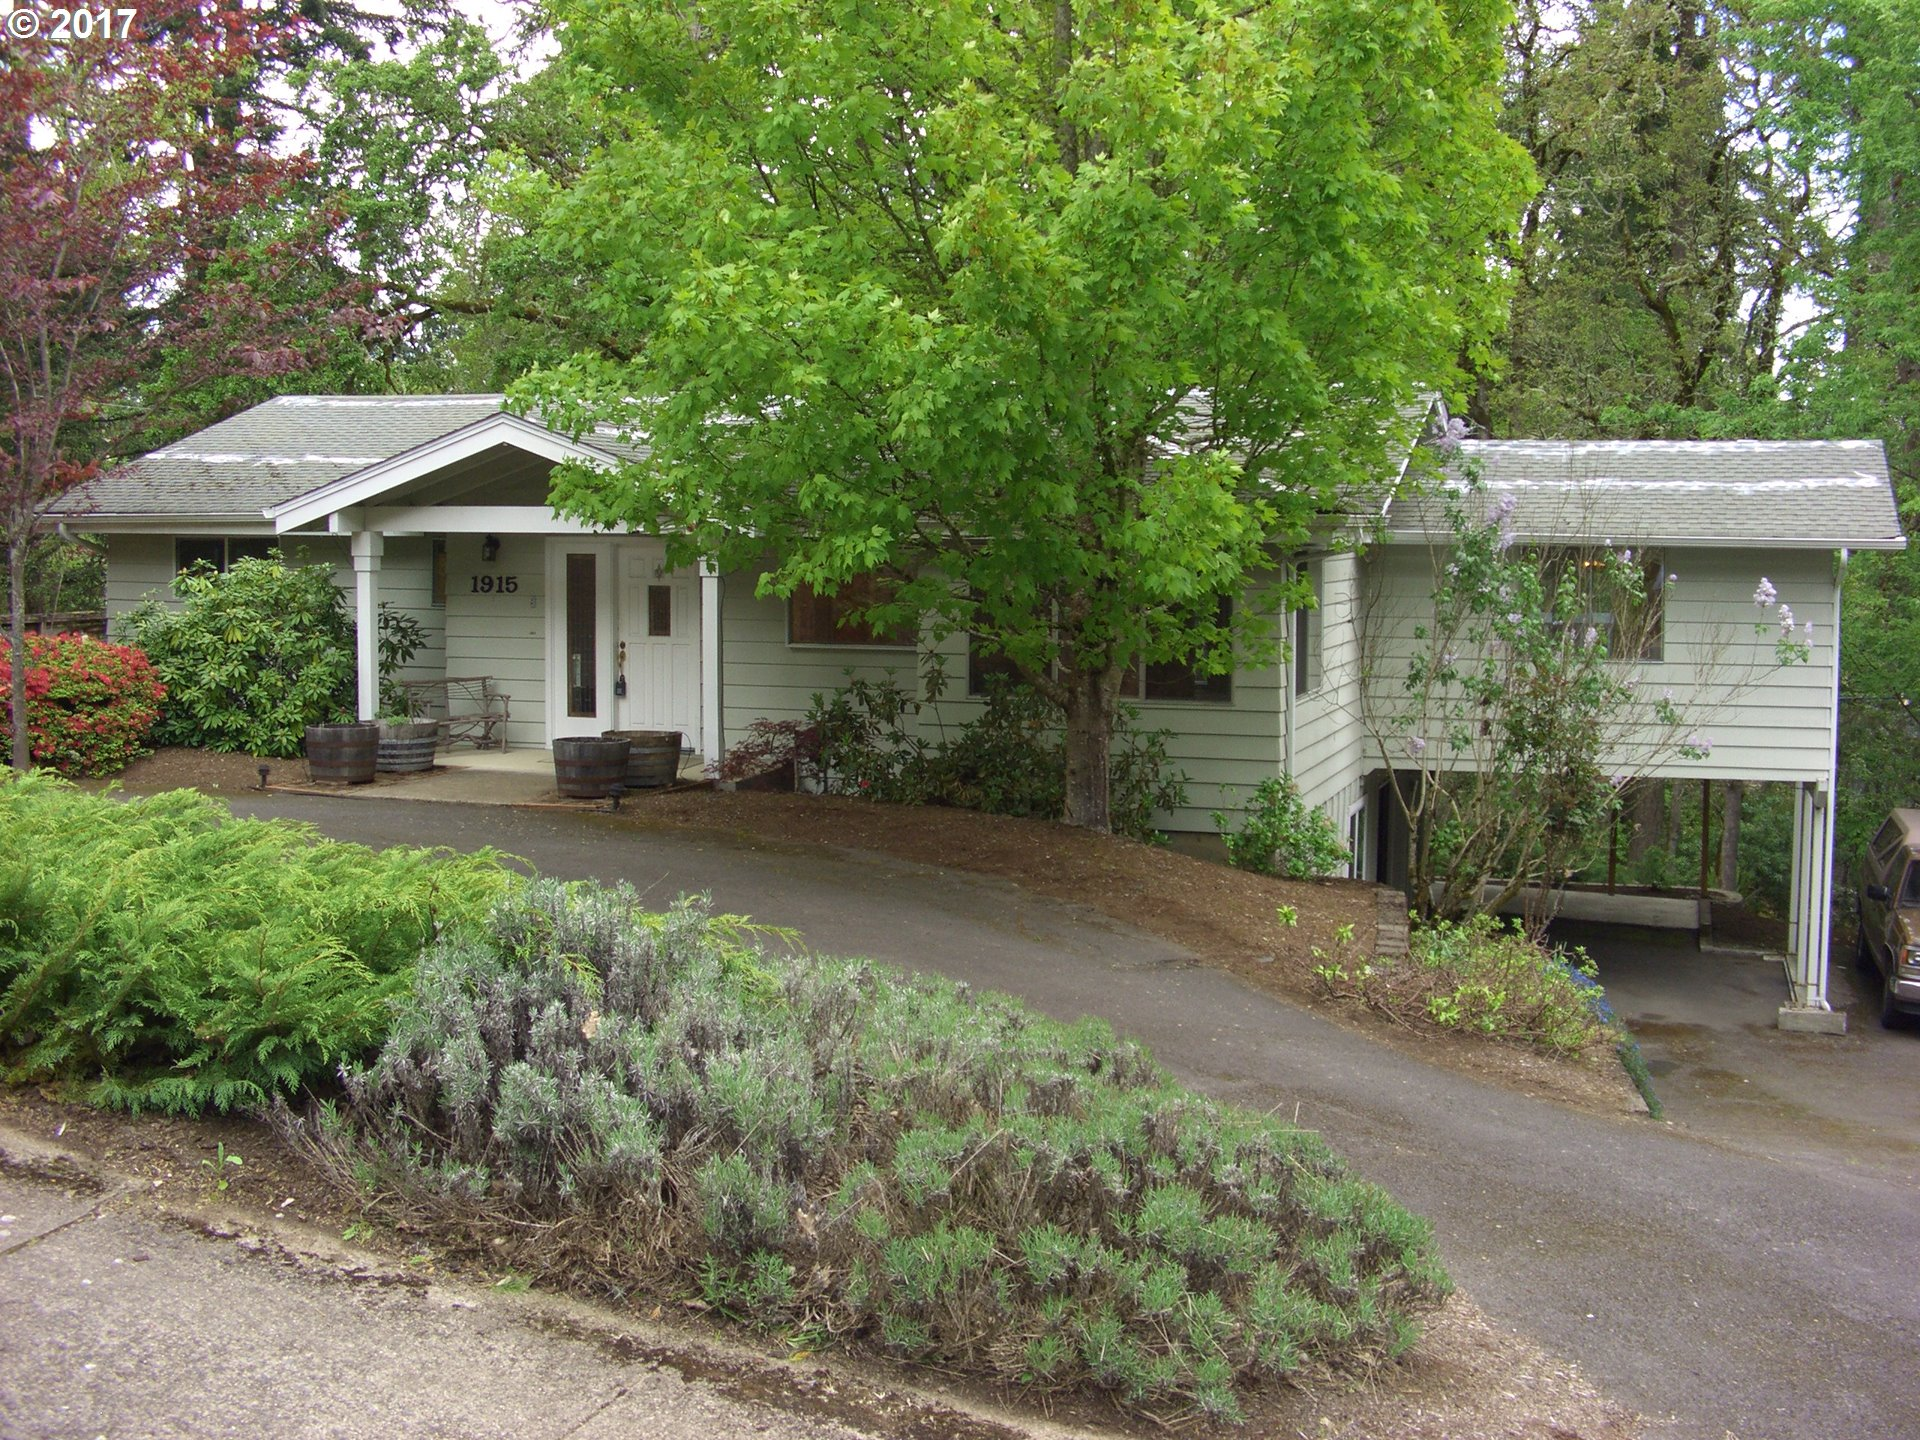 1915 W 28TH AVE, Eugene OR 97405